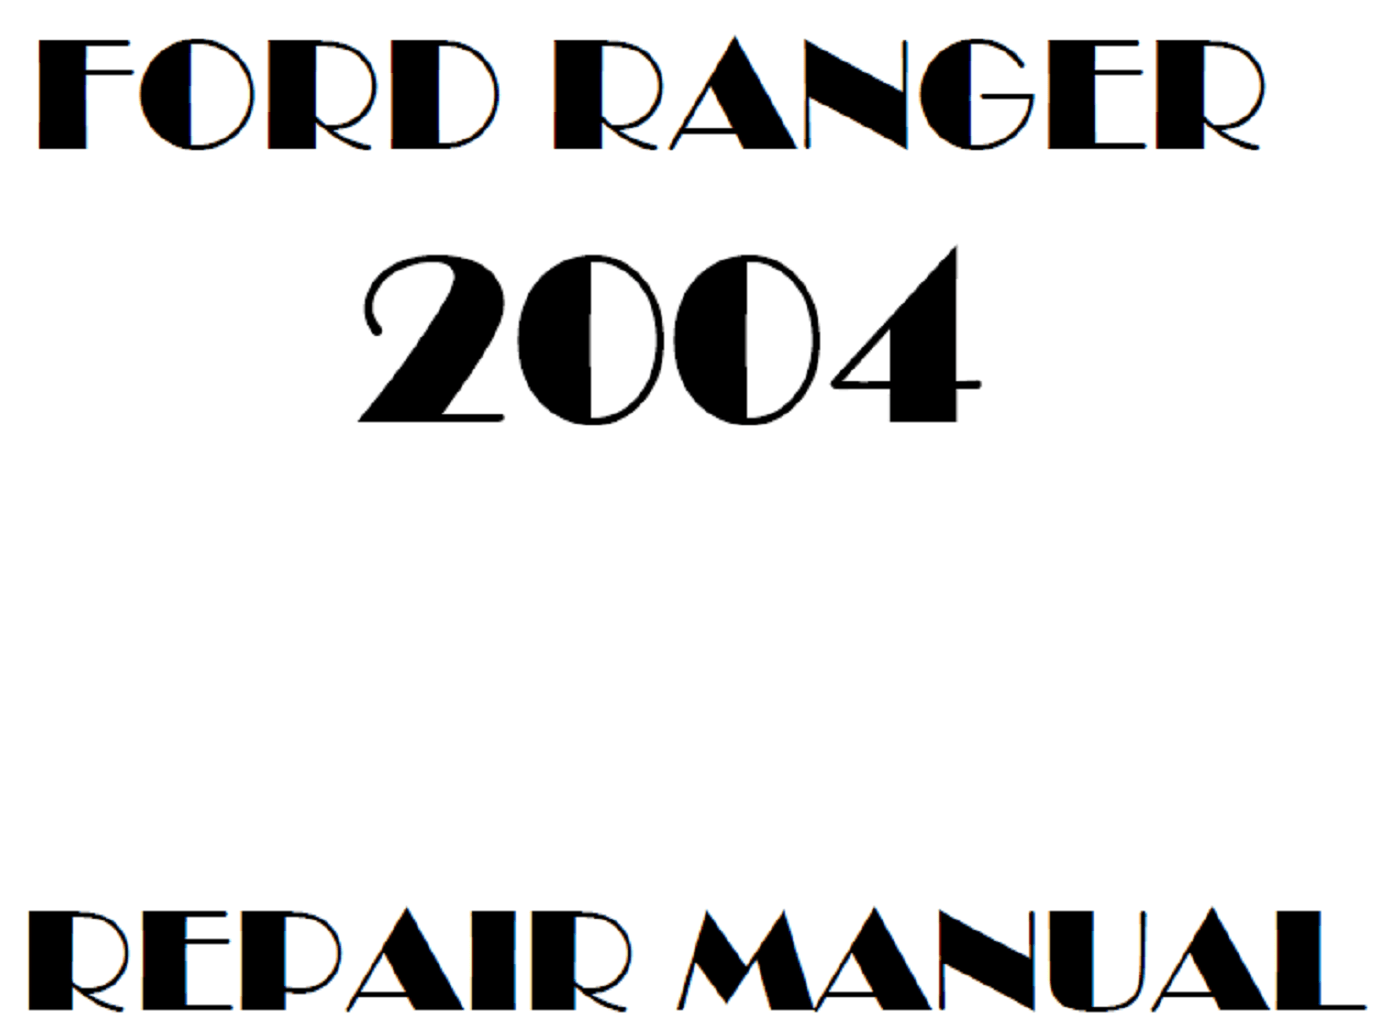 2004 Ford Ranger repair manual